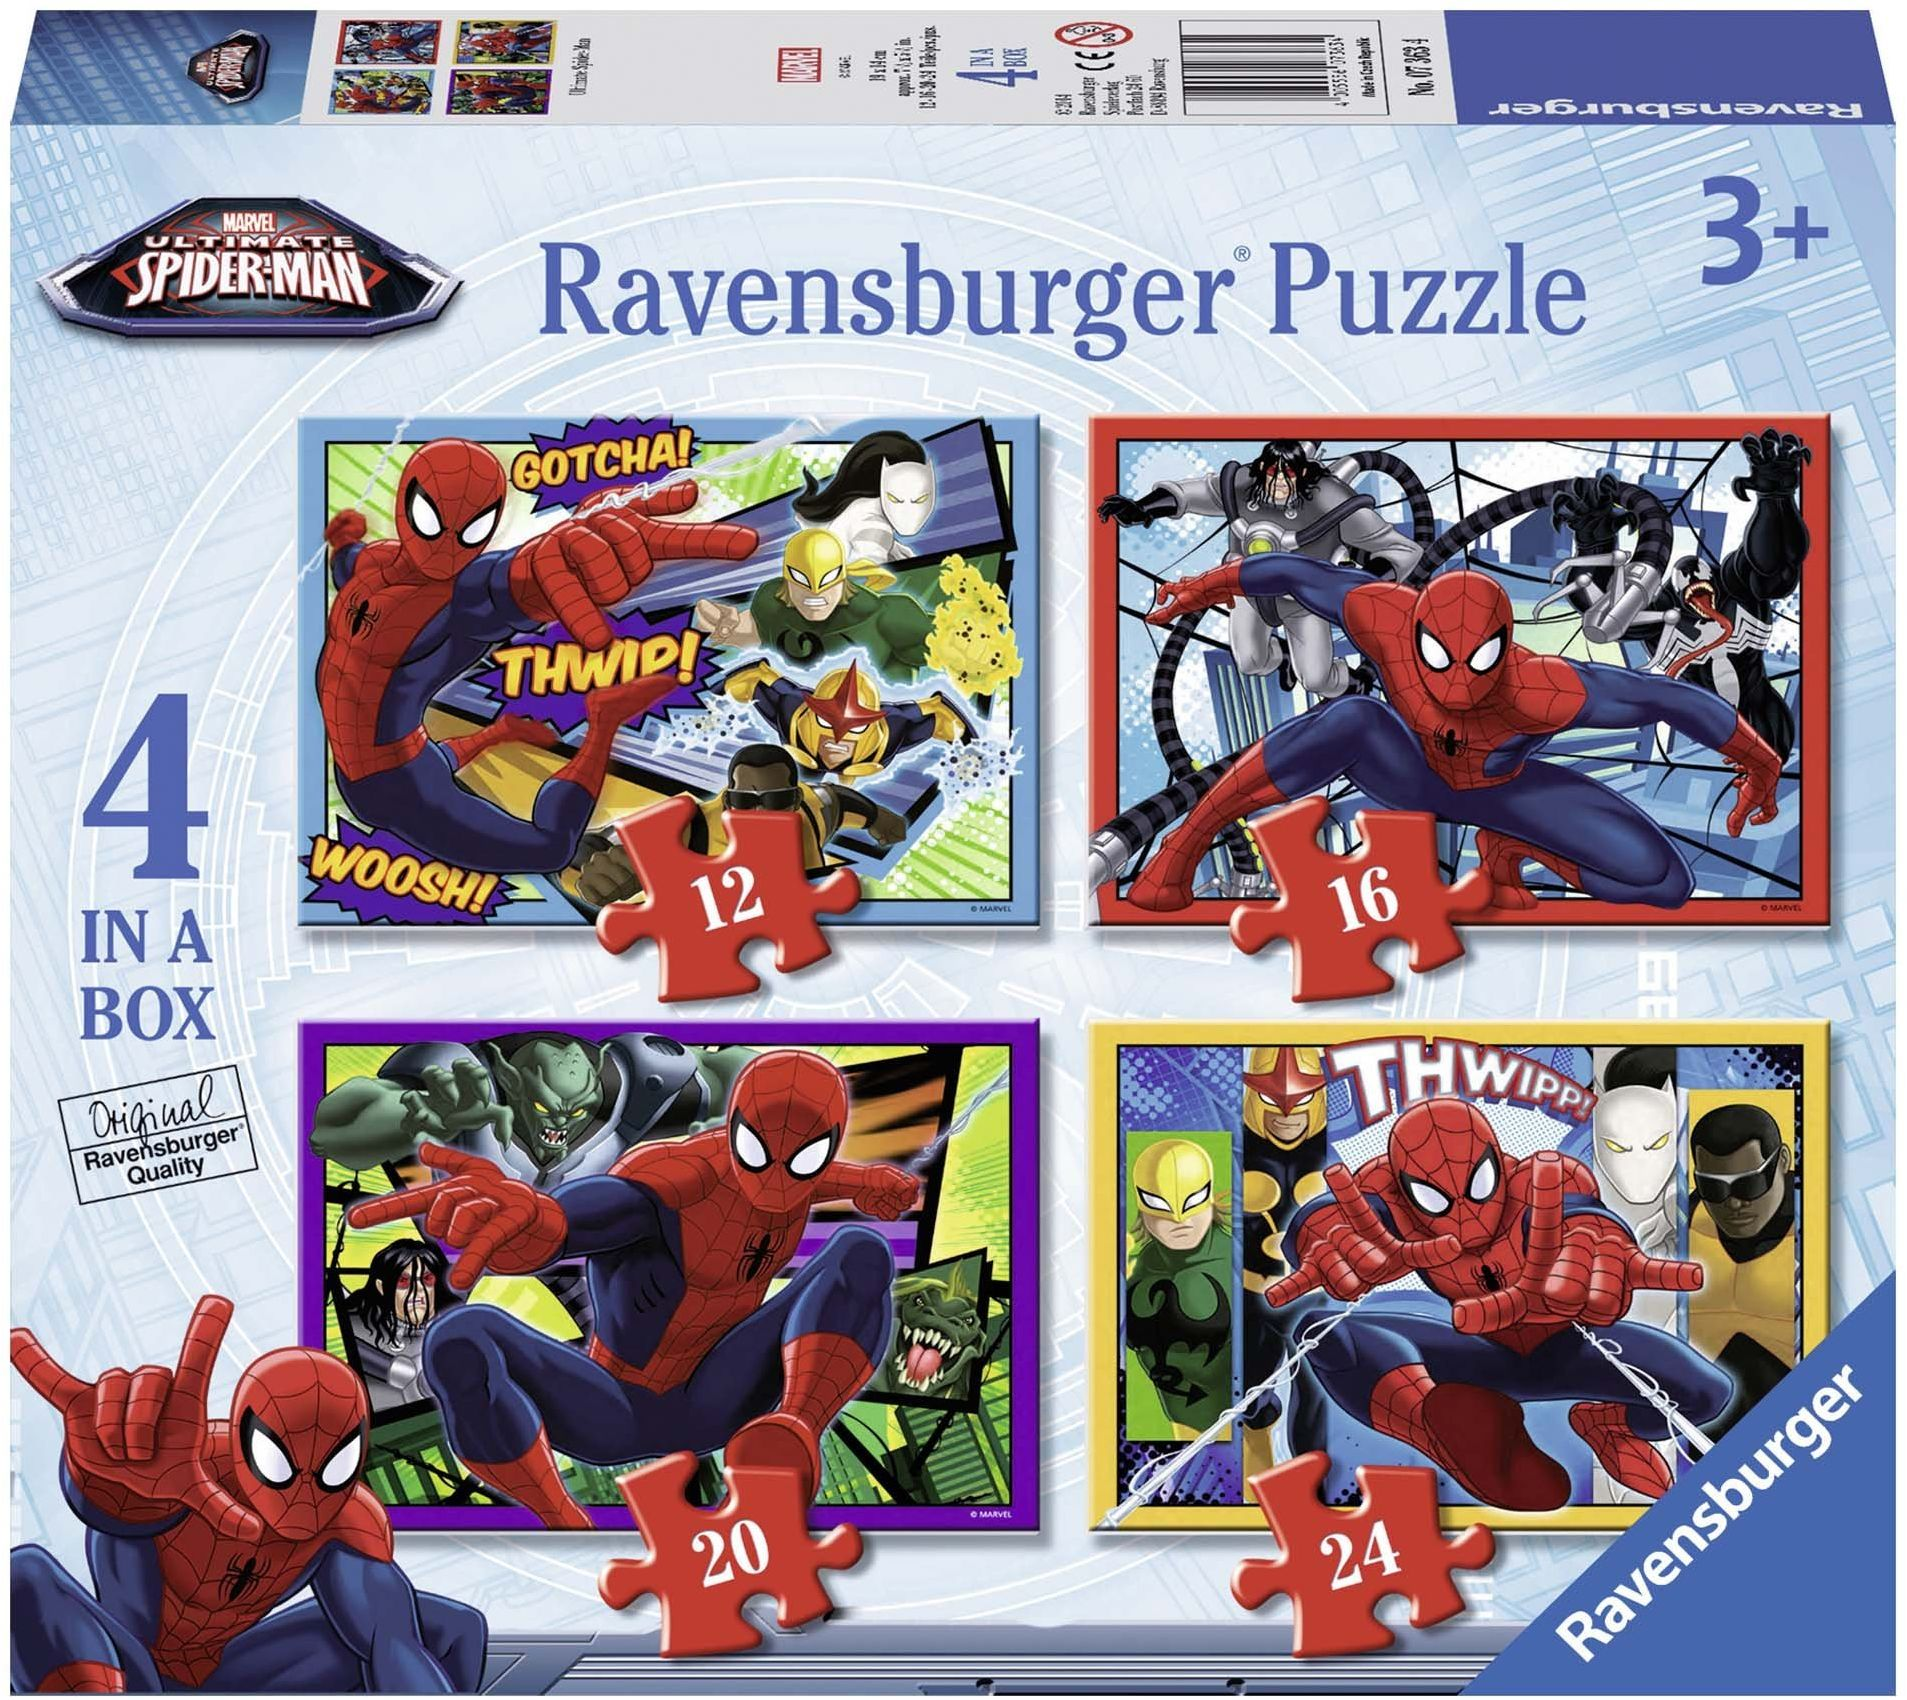 Ravensburger Ultimate Spider-man 4 in A Box Jigsaw puzzle